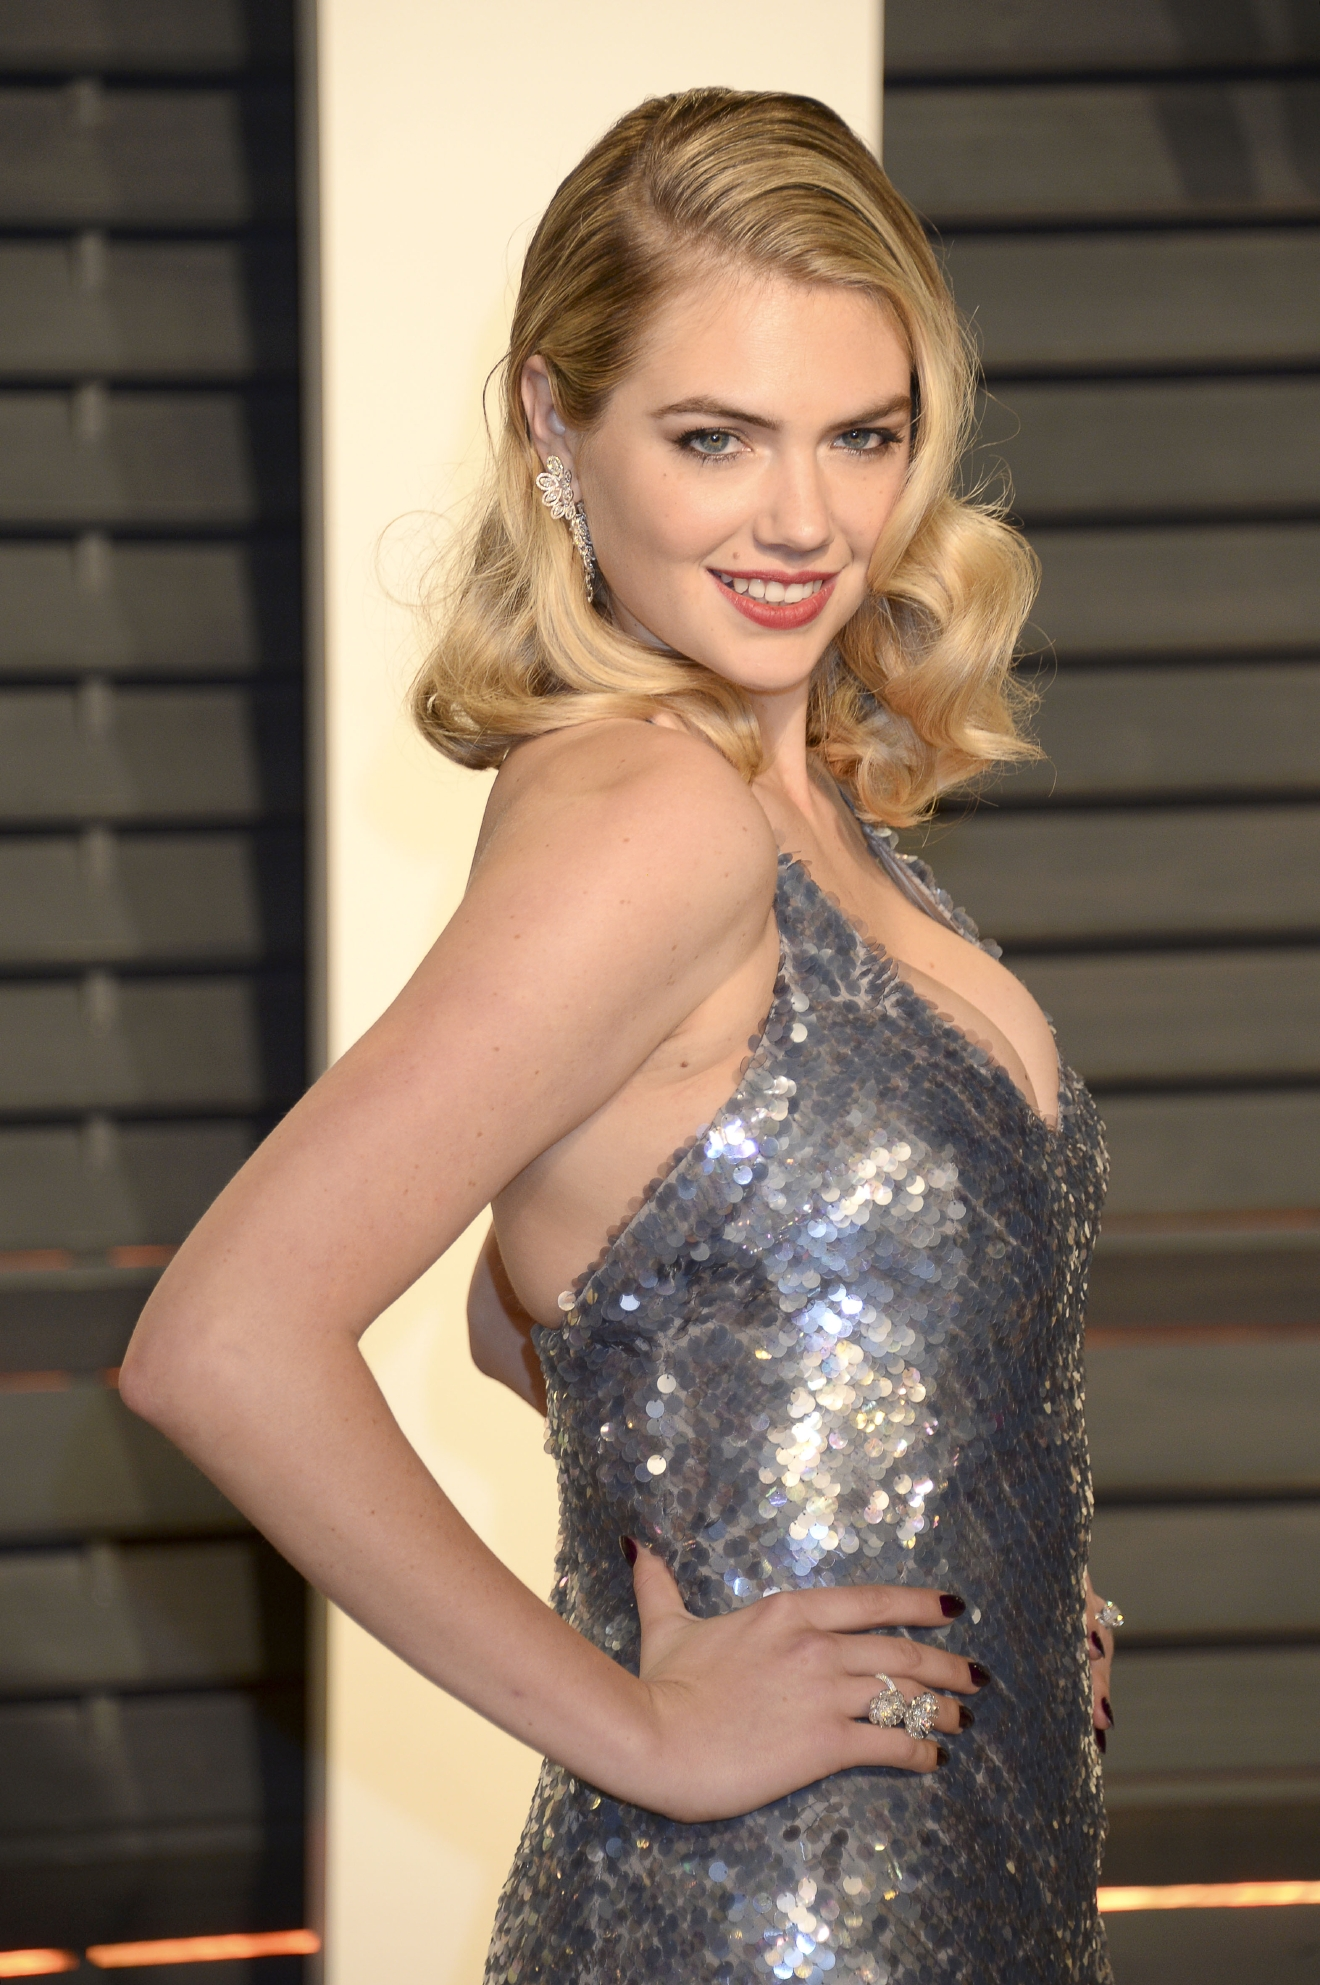 2017 Vanity Fair Oscar Party hosted by Graydon Carter at Wallis Annenberg Center for the Performing Arts - Arrivals  Featuring: Kate Upton Where: Los Angeles, California, United States When: 26 Feb 2017 Credit: Dennis Van Tine/Future Image/WENN.com  **Not available for publication in Germany**